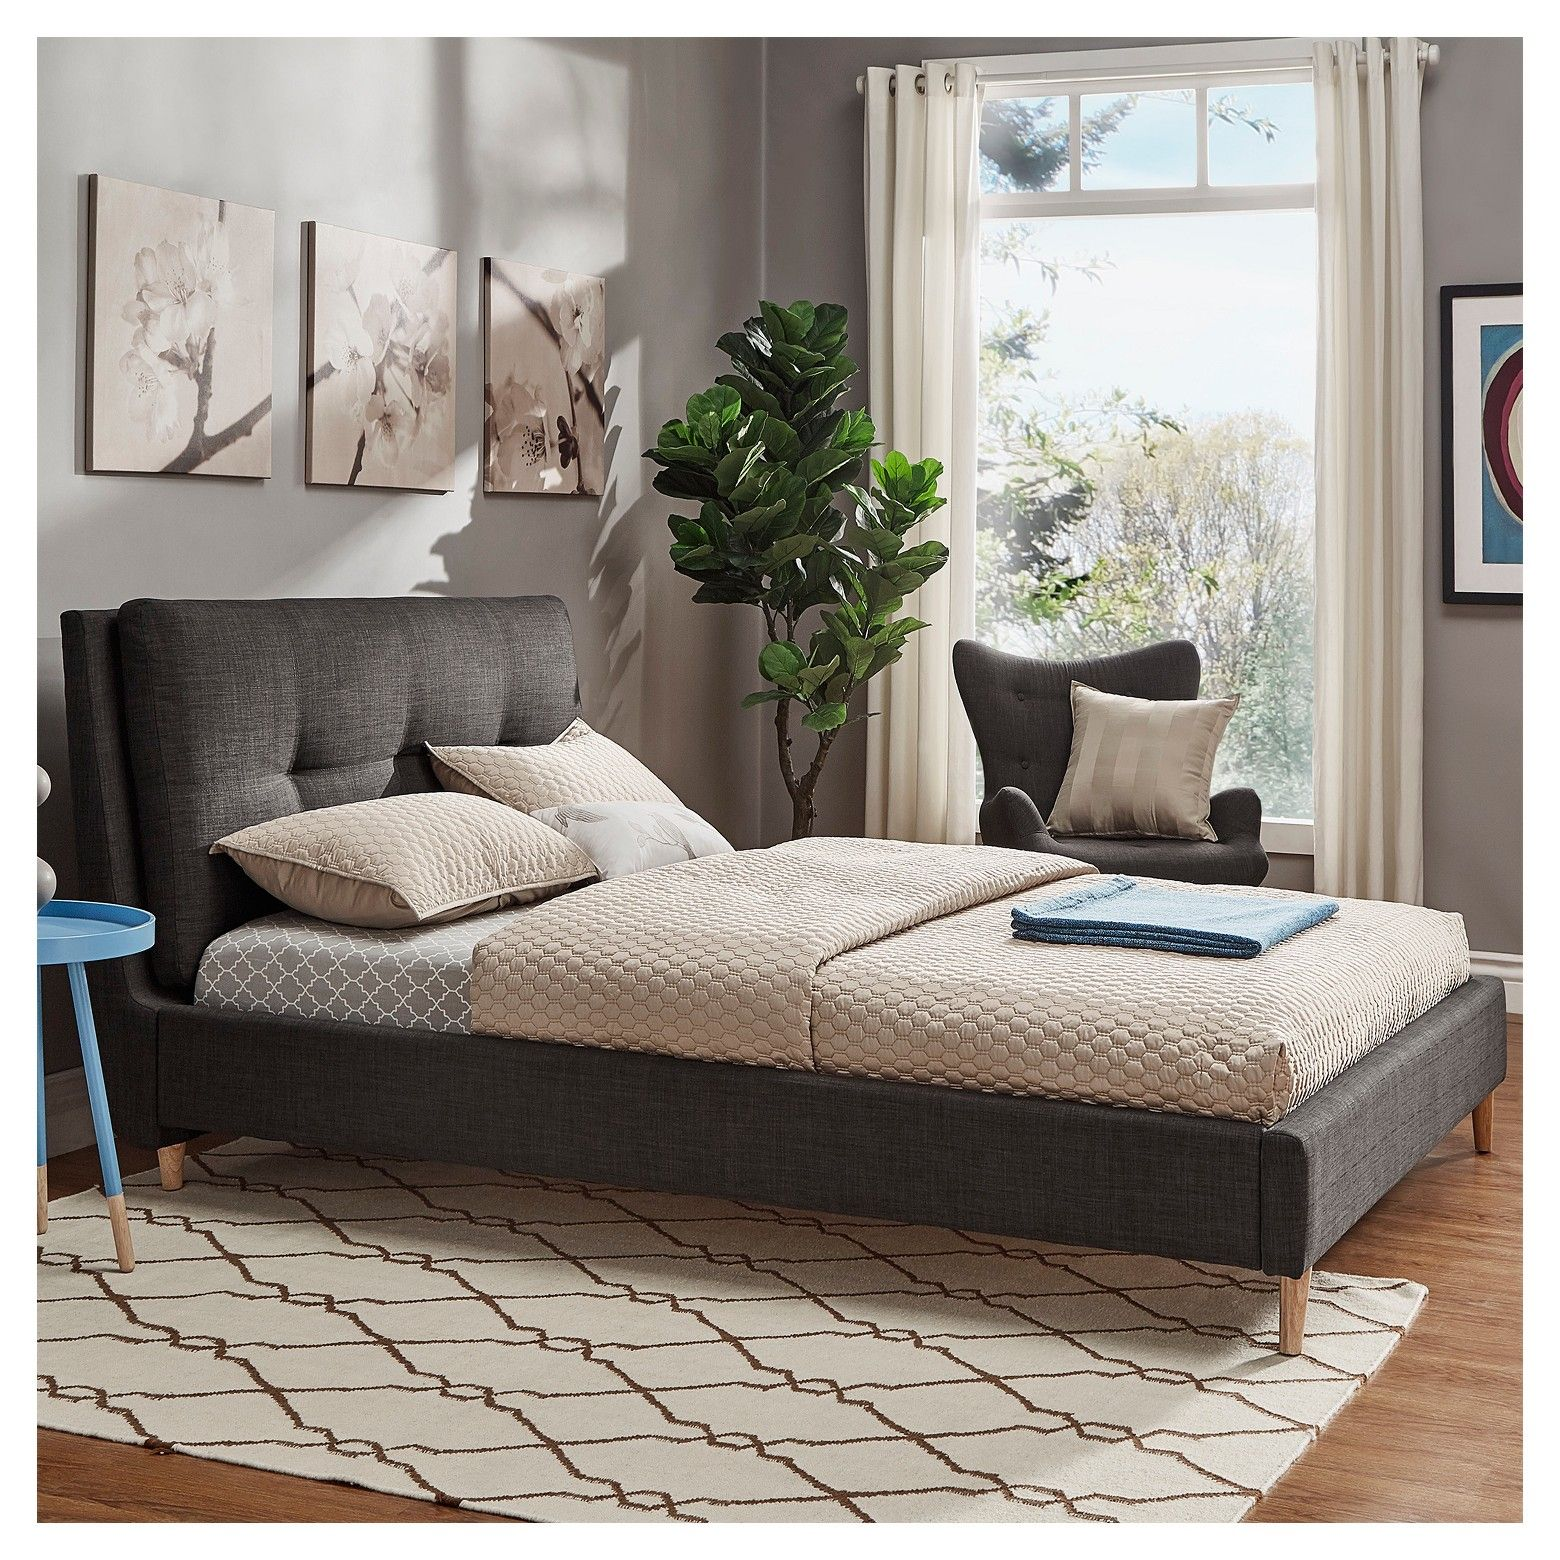 A modern take on classic comfort the Barnside Metro Bed